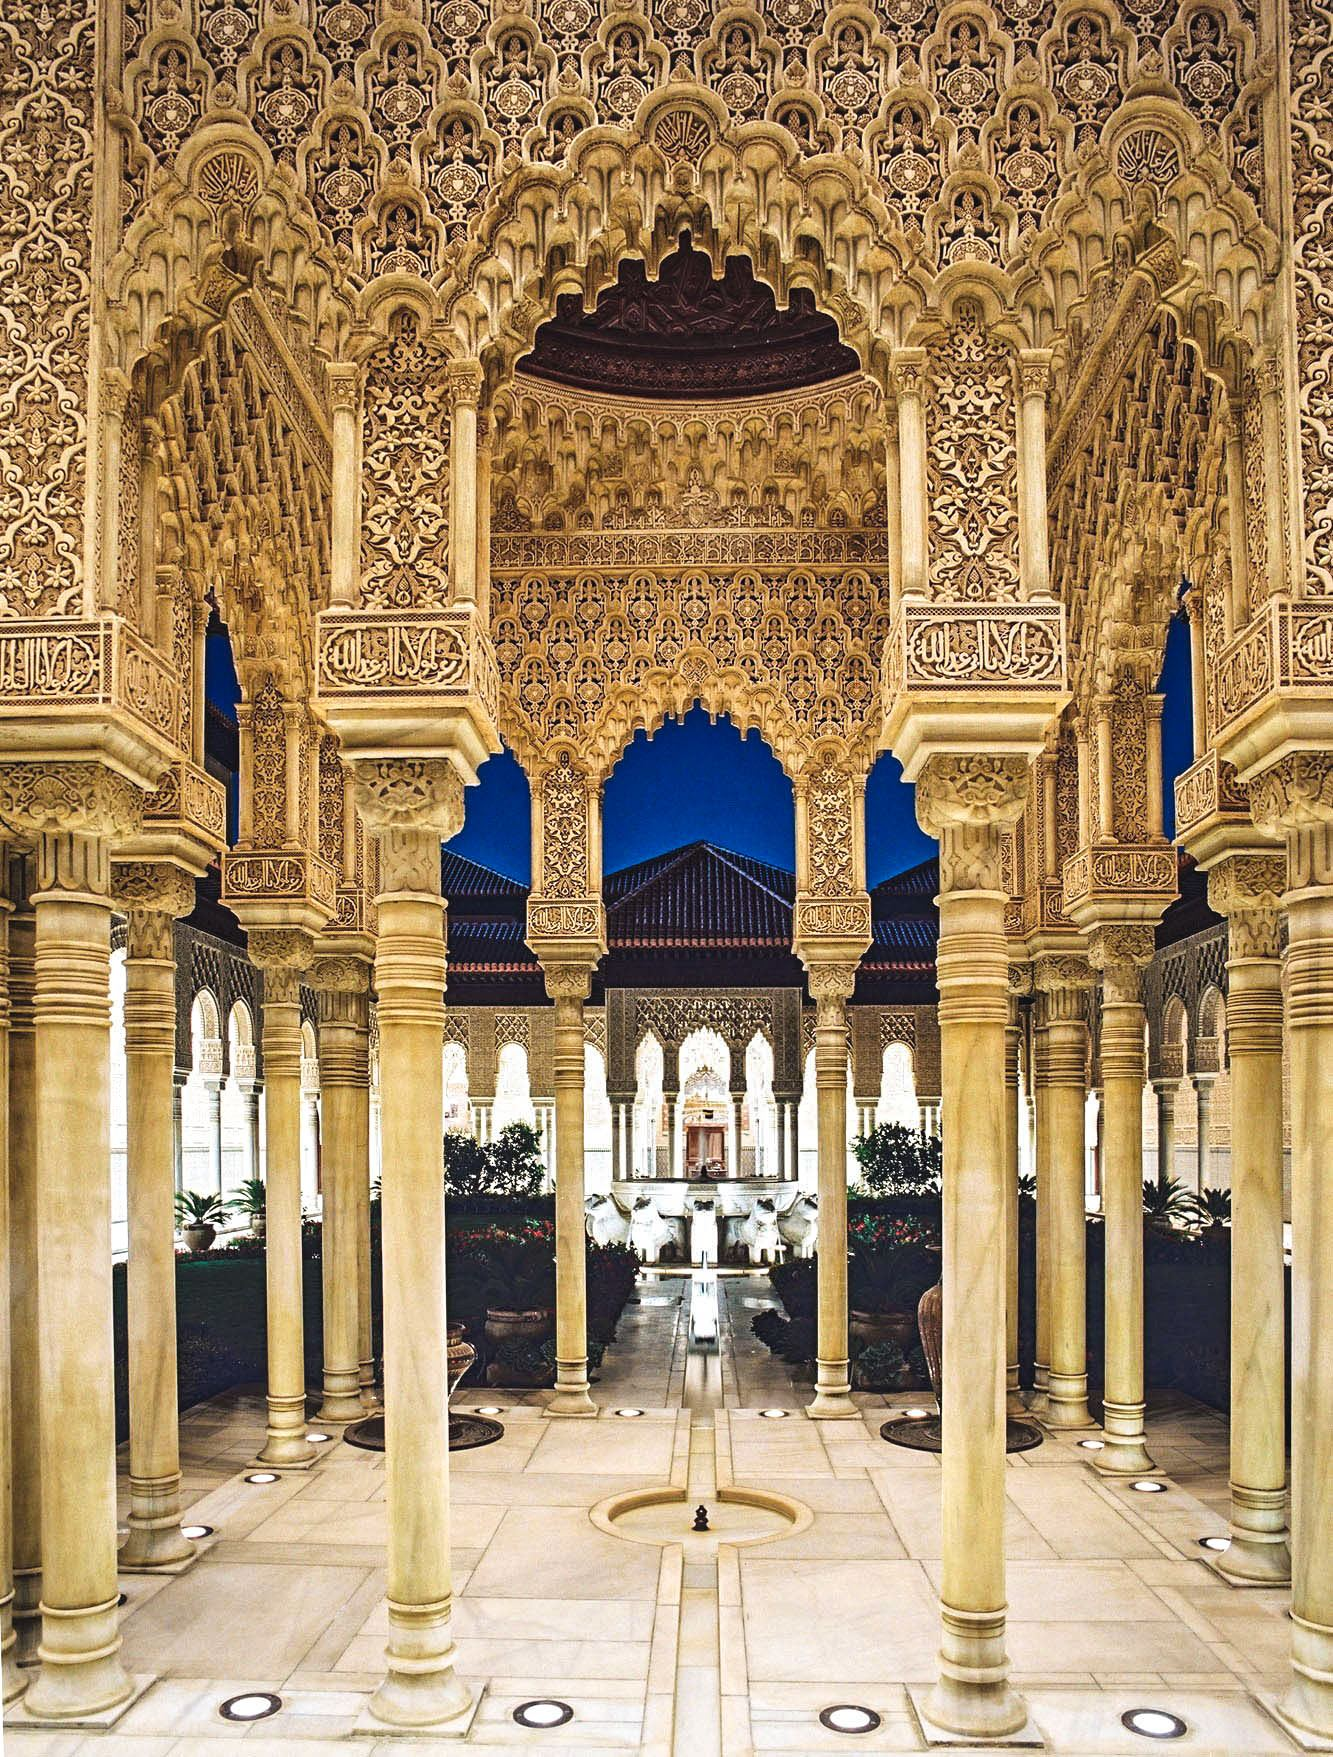 Travel Spotlight: 9 Reasons Why You Should Visit Alhambra in Spain! (1)